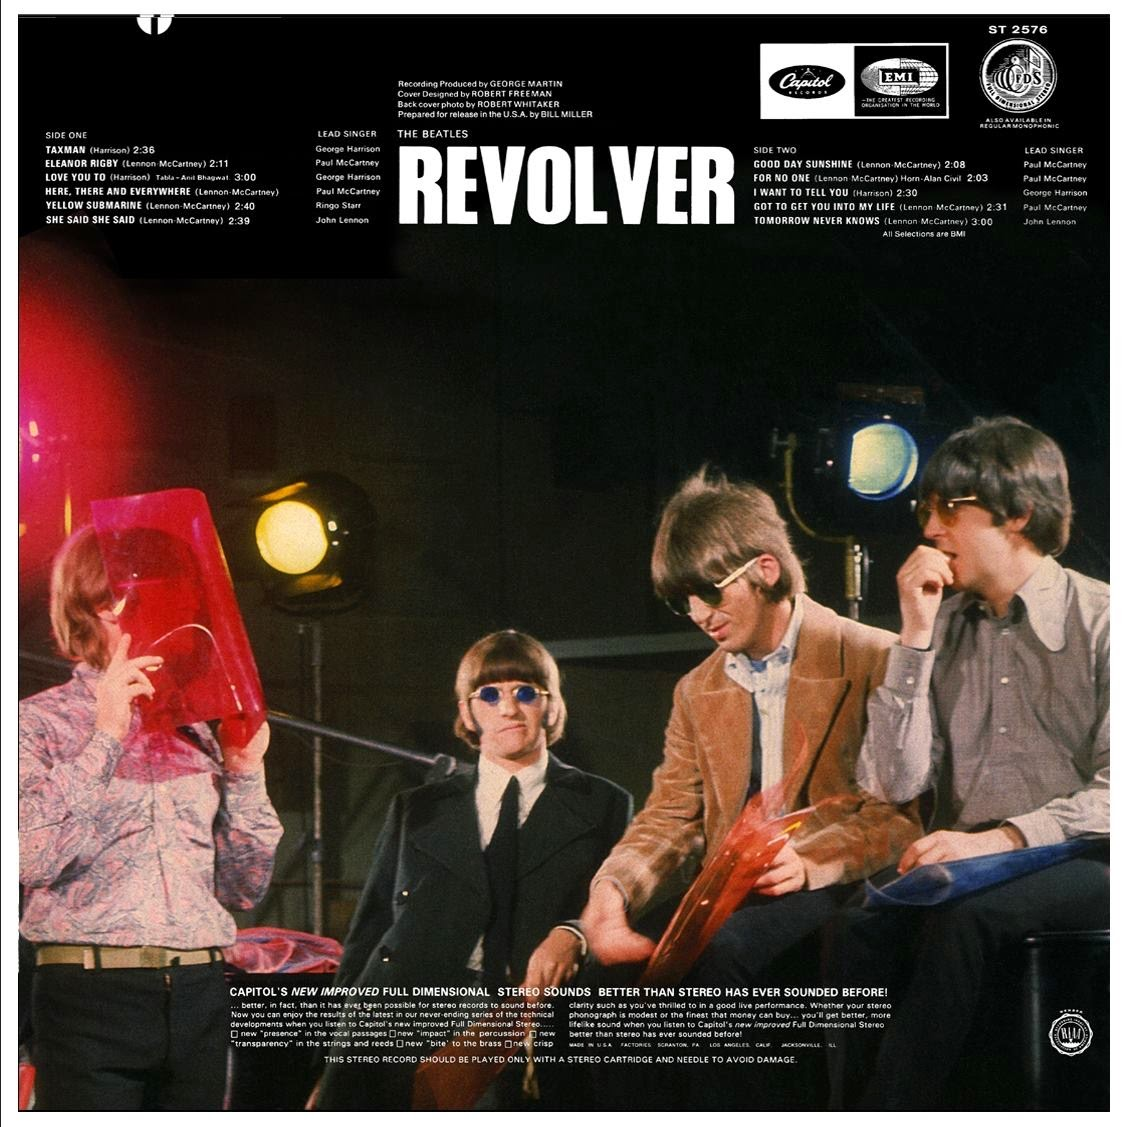 The Daily Beatle Album Covers Revolver